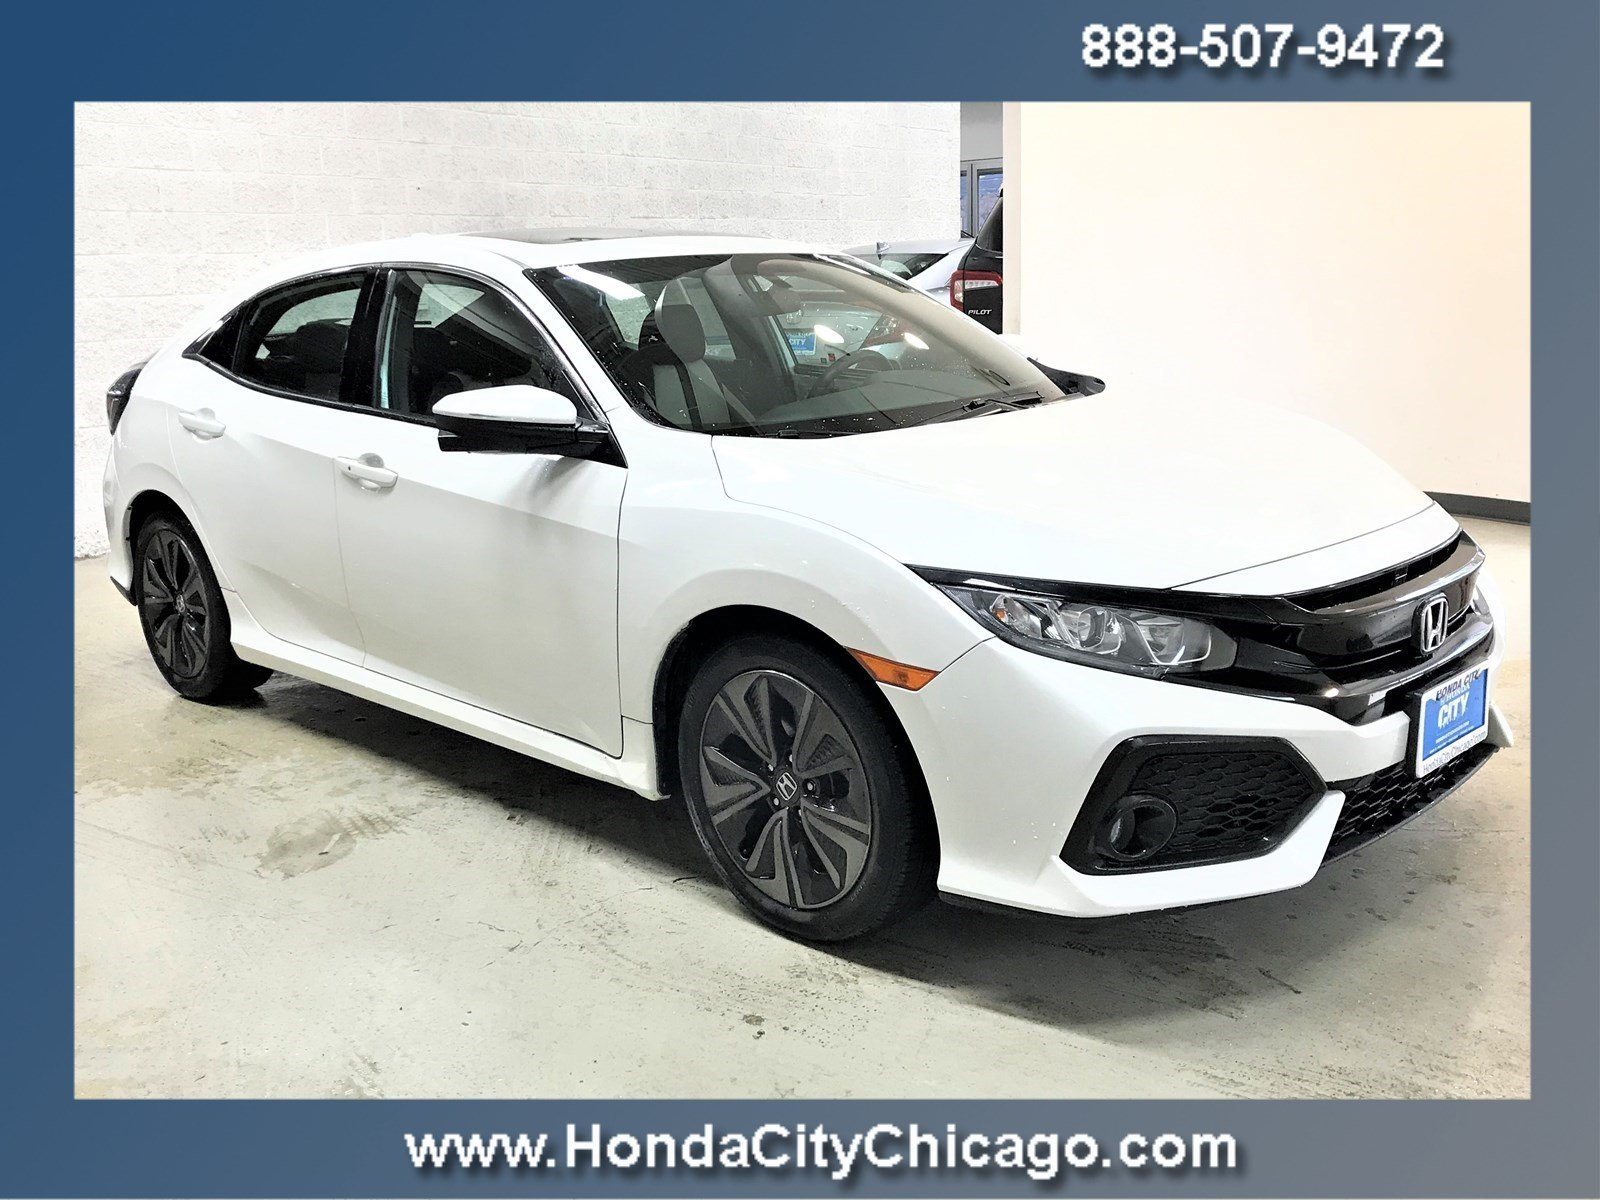 2017 Honda Civic Hatchback EX EX CVT